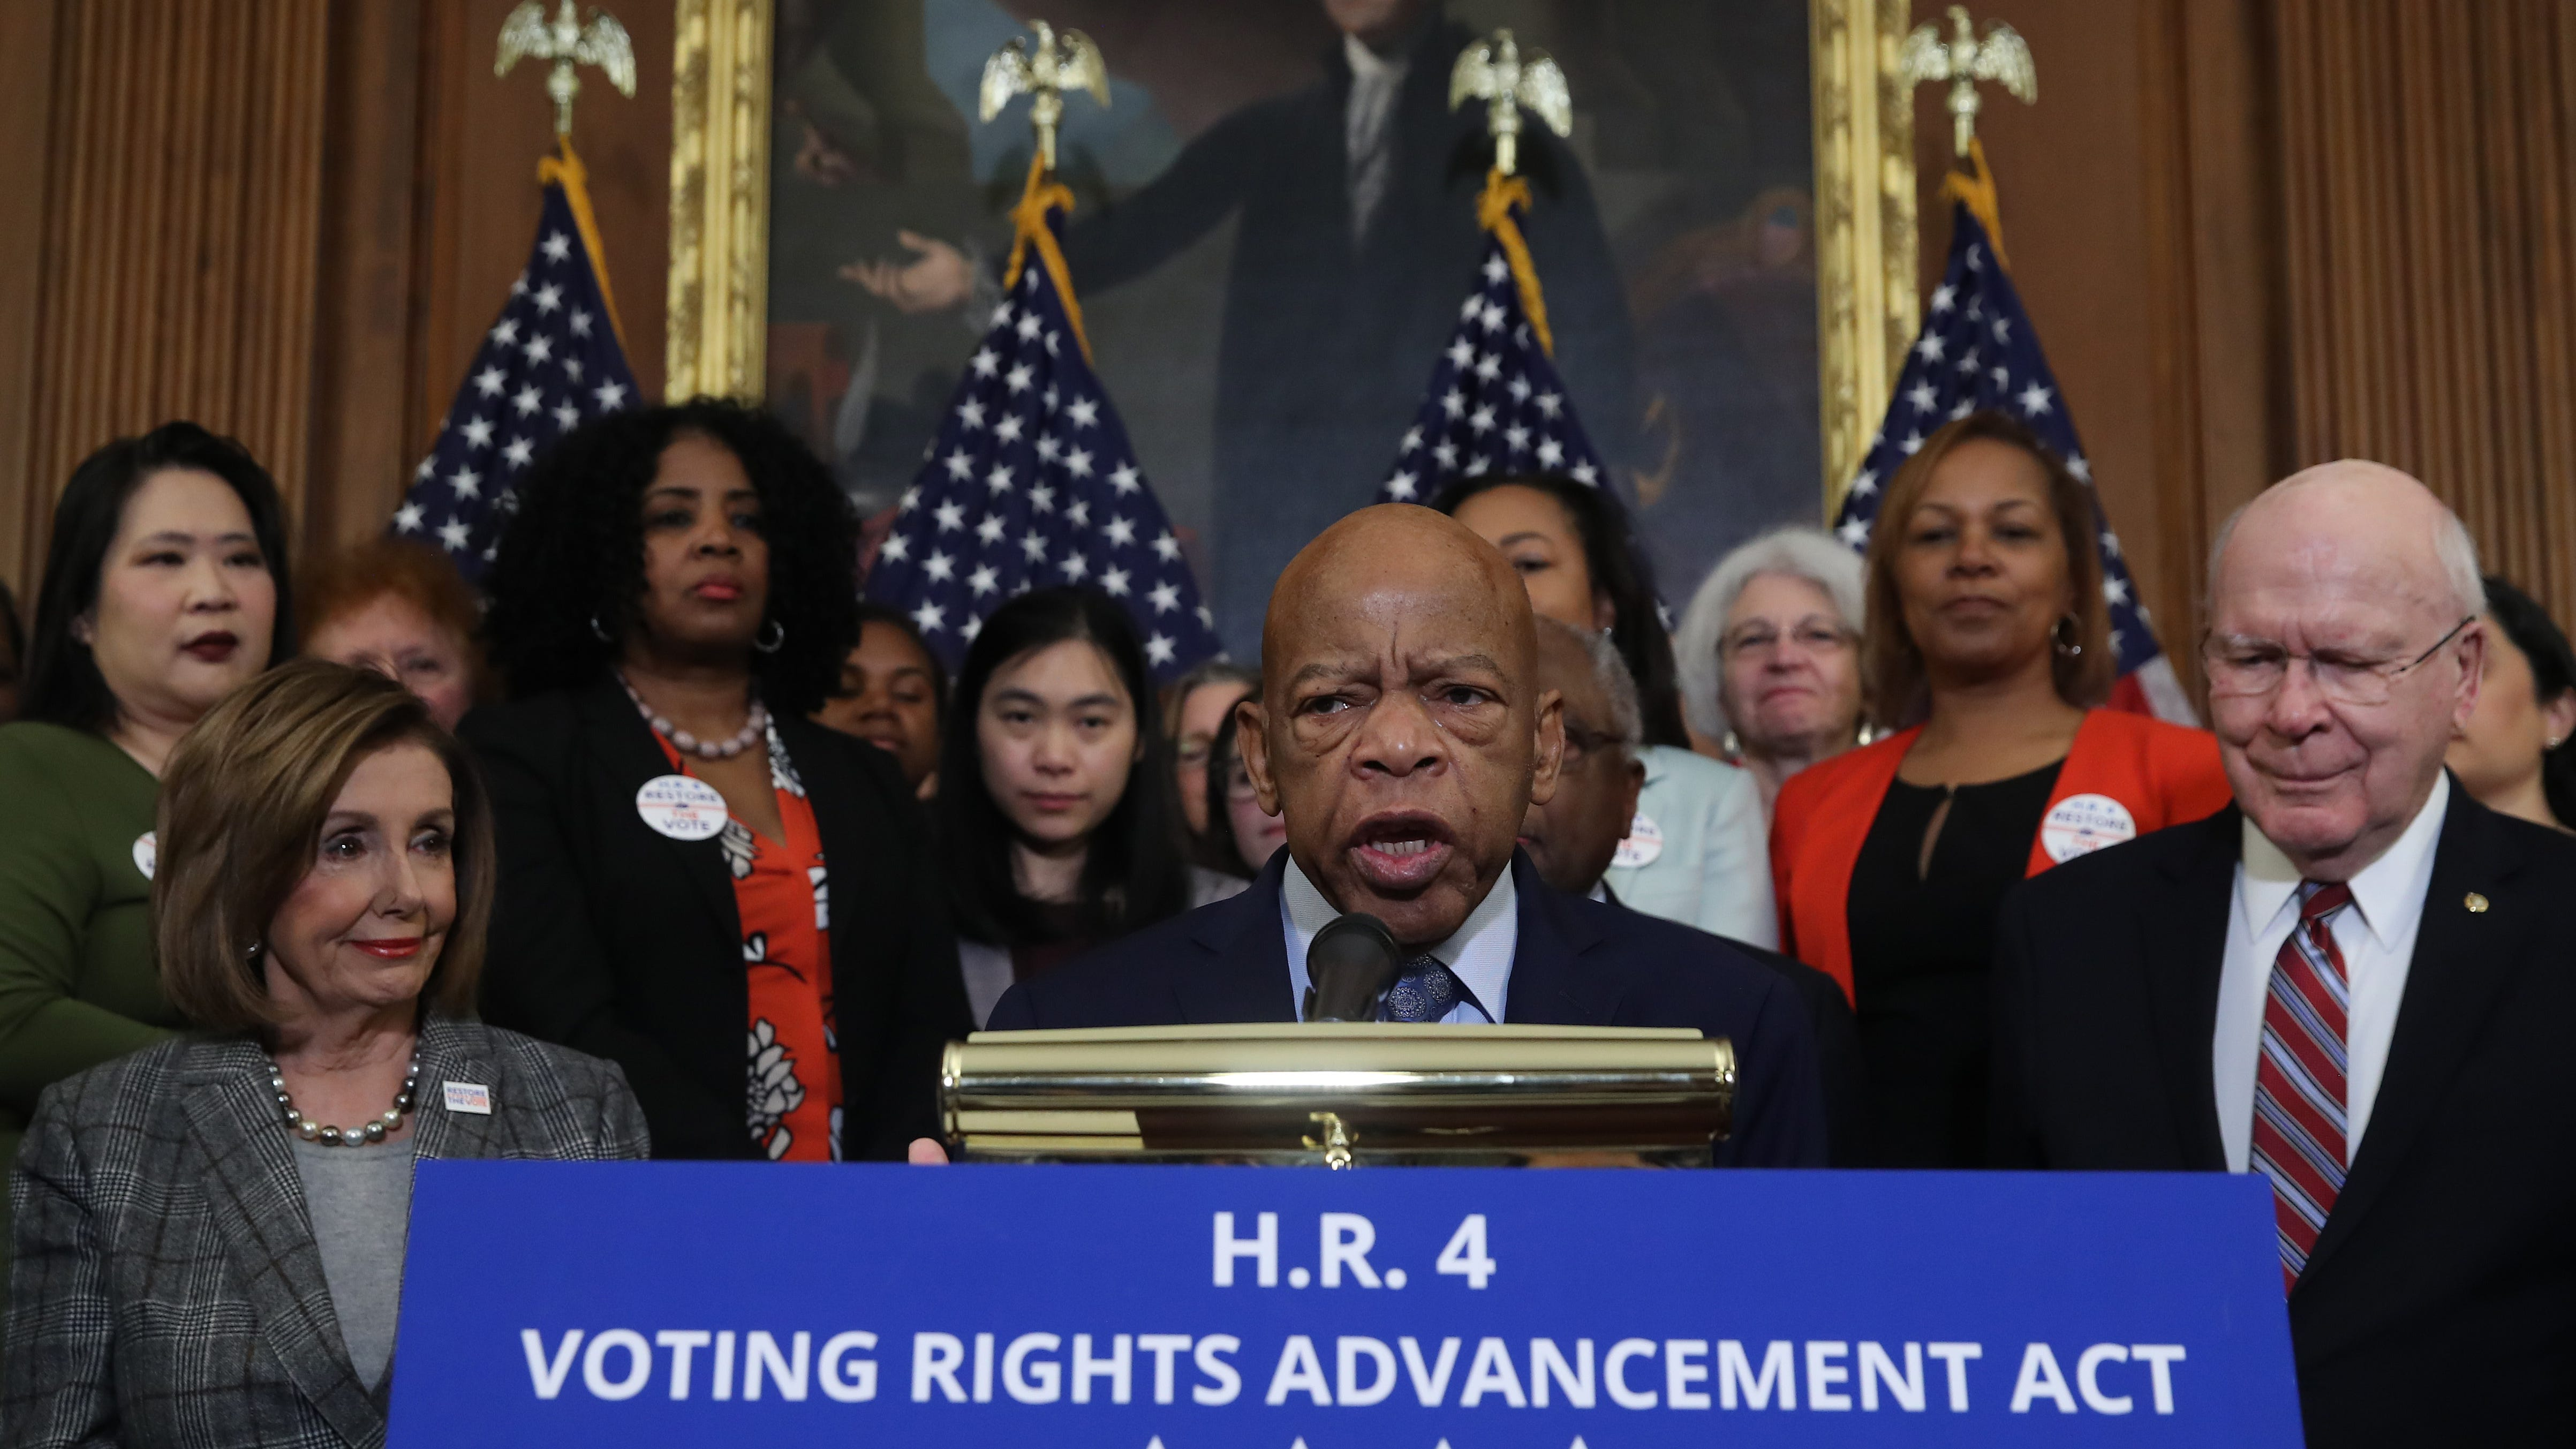 Rep. David Scott Statement on House passage of the John R. Lewis Voting Rights Advancement Act